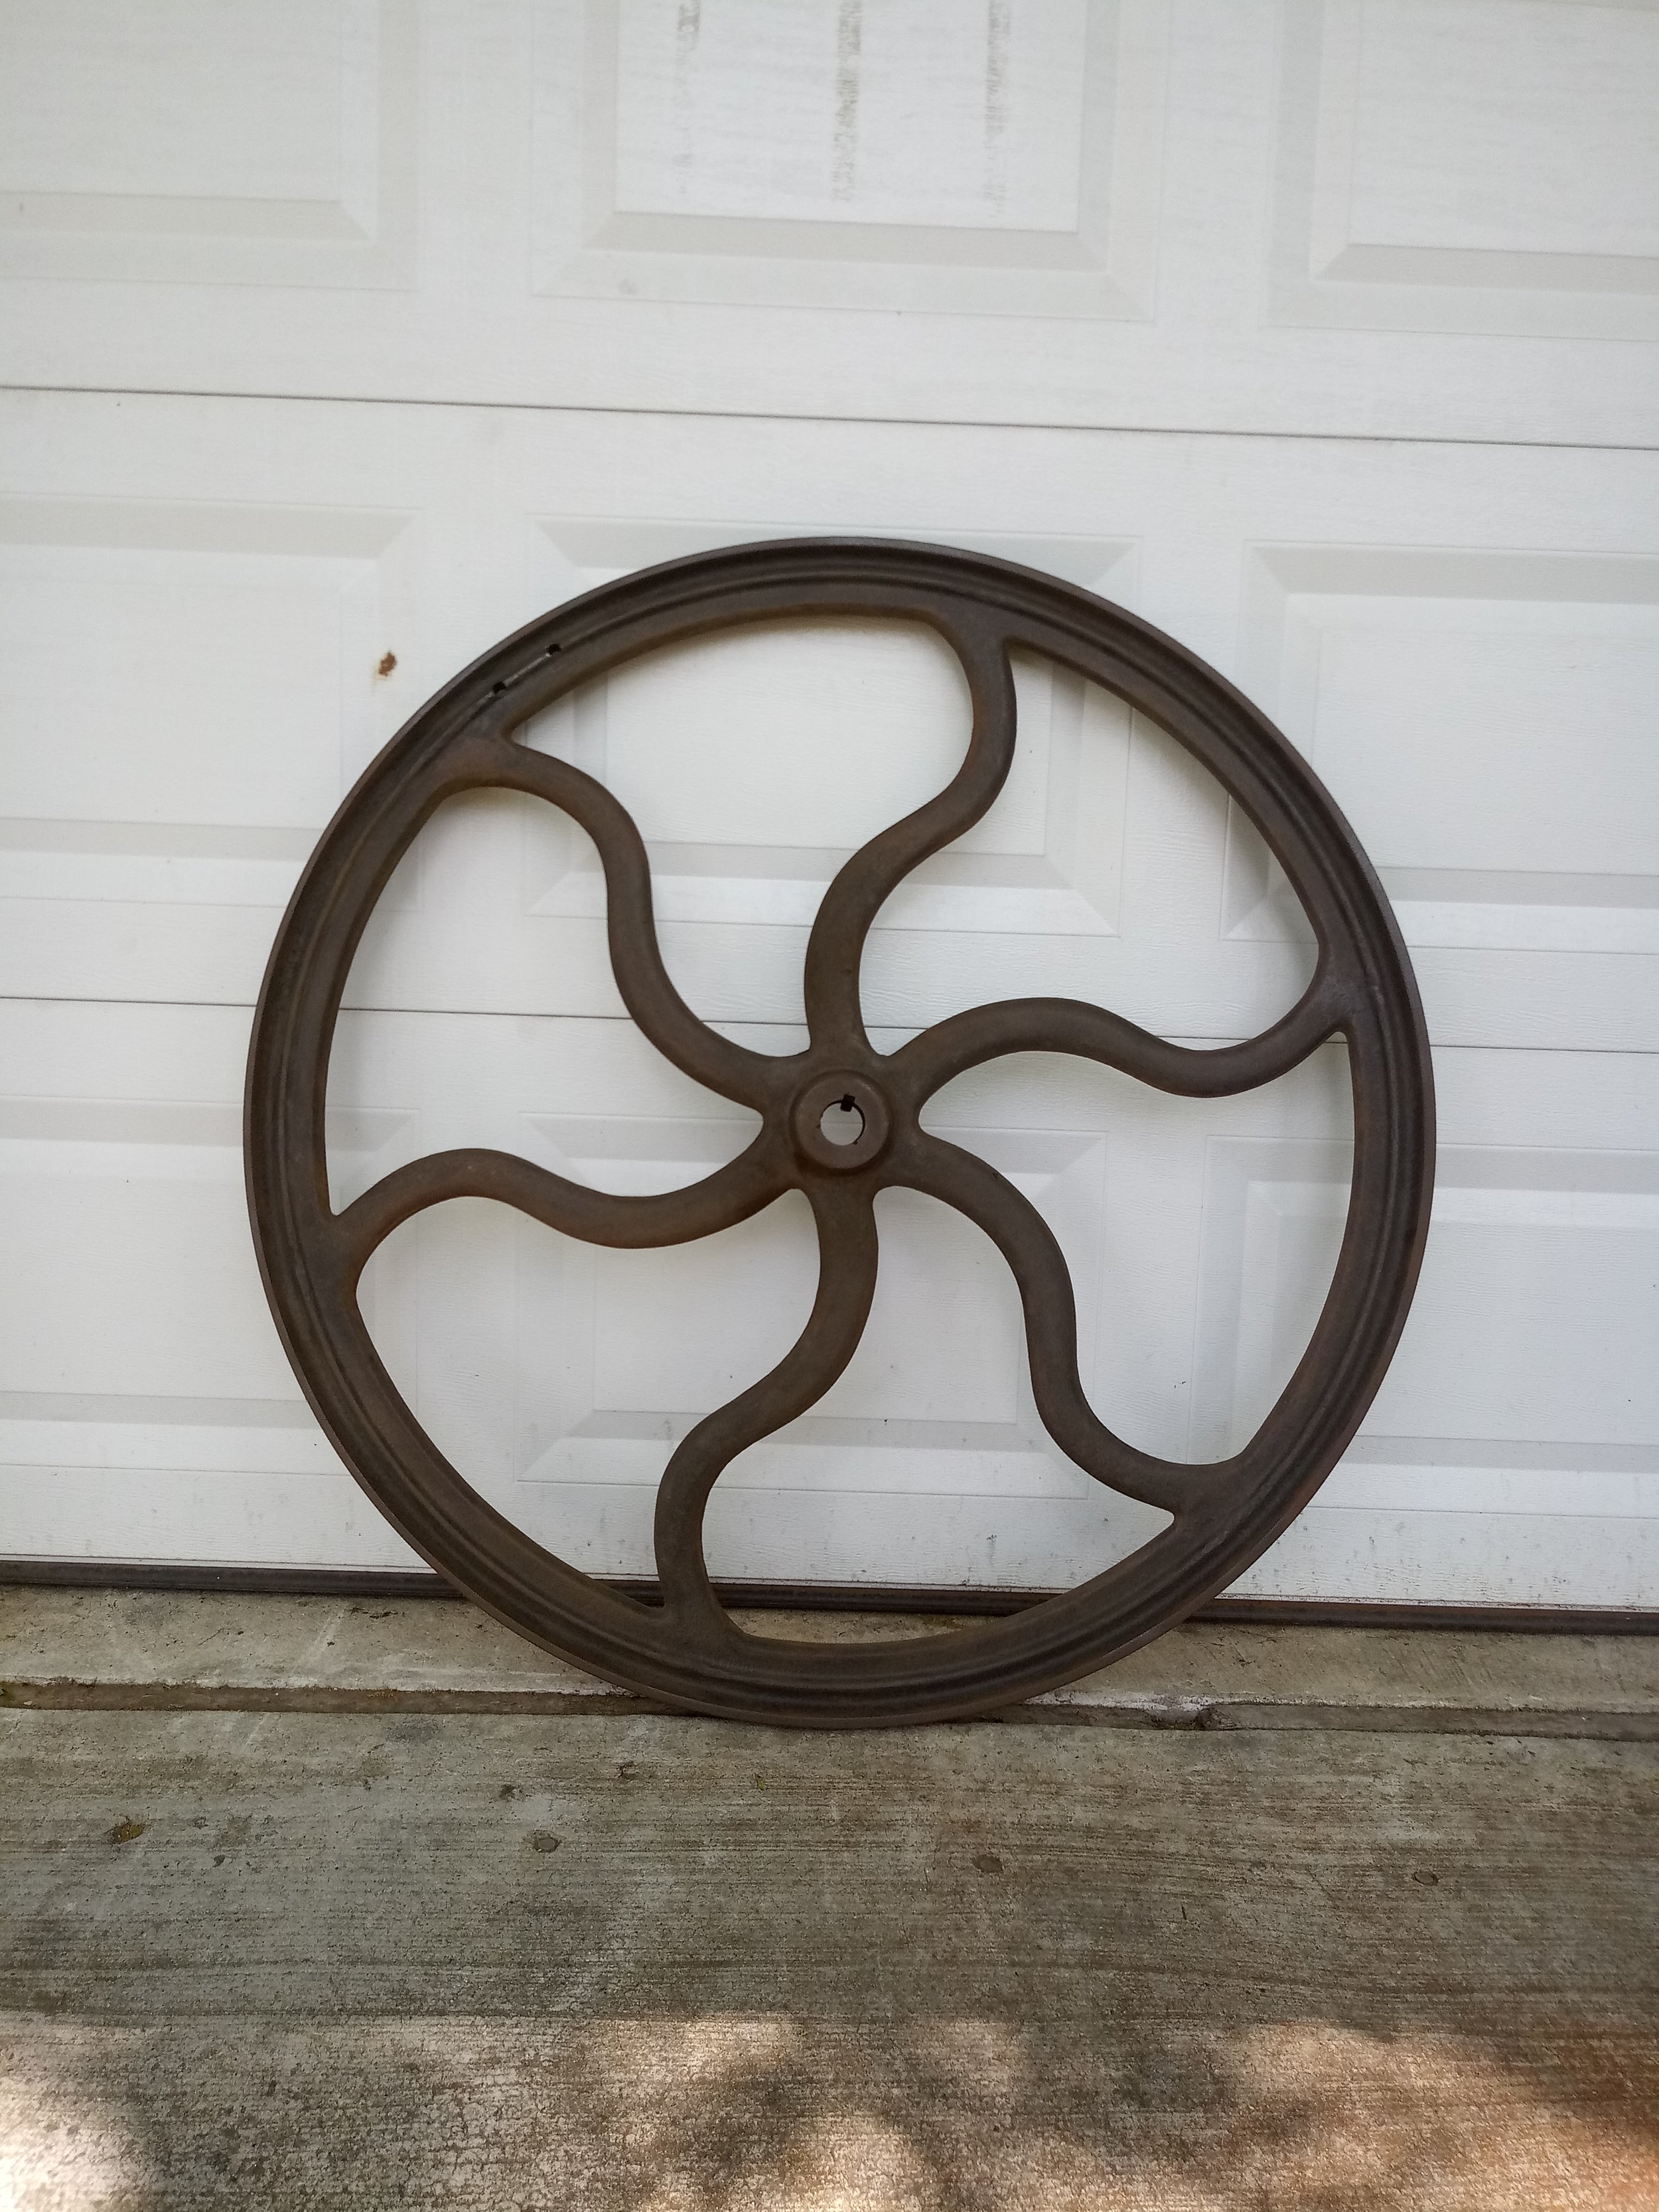 The wheel free of rust is ready